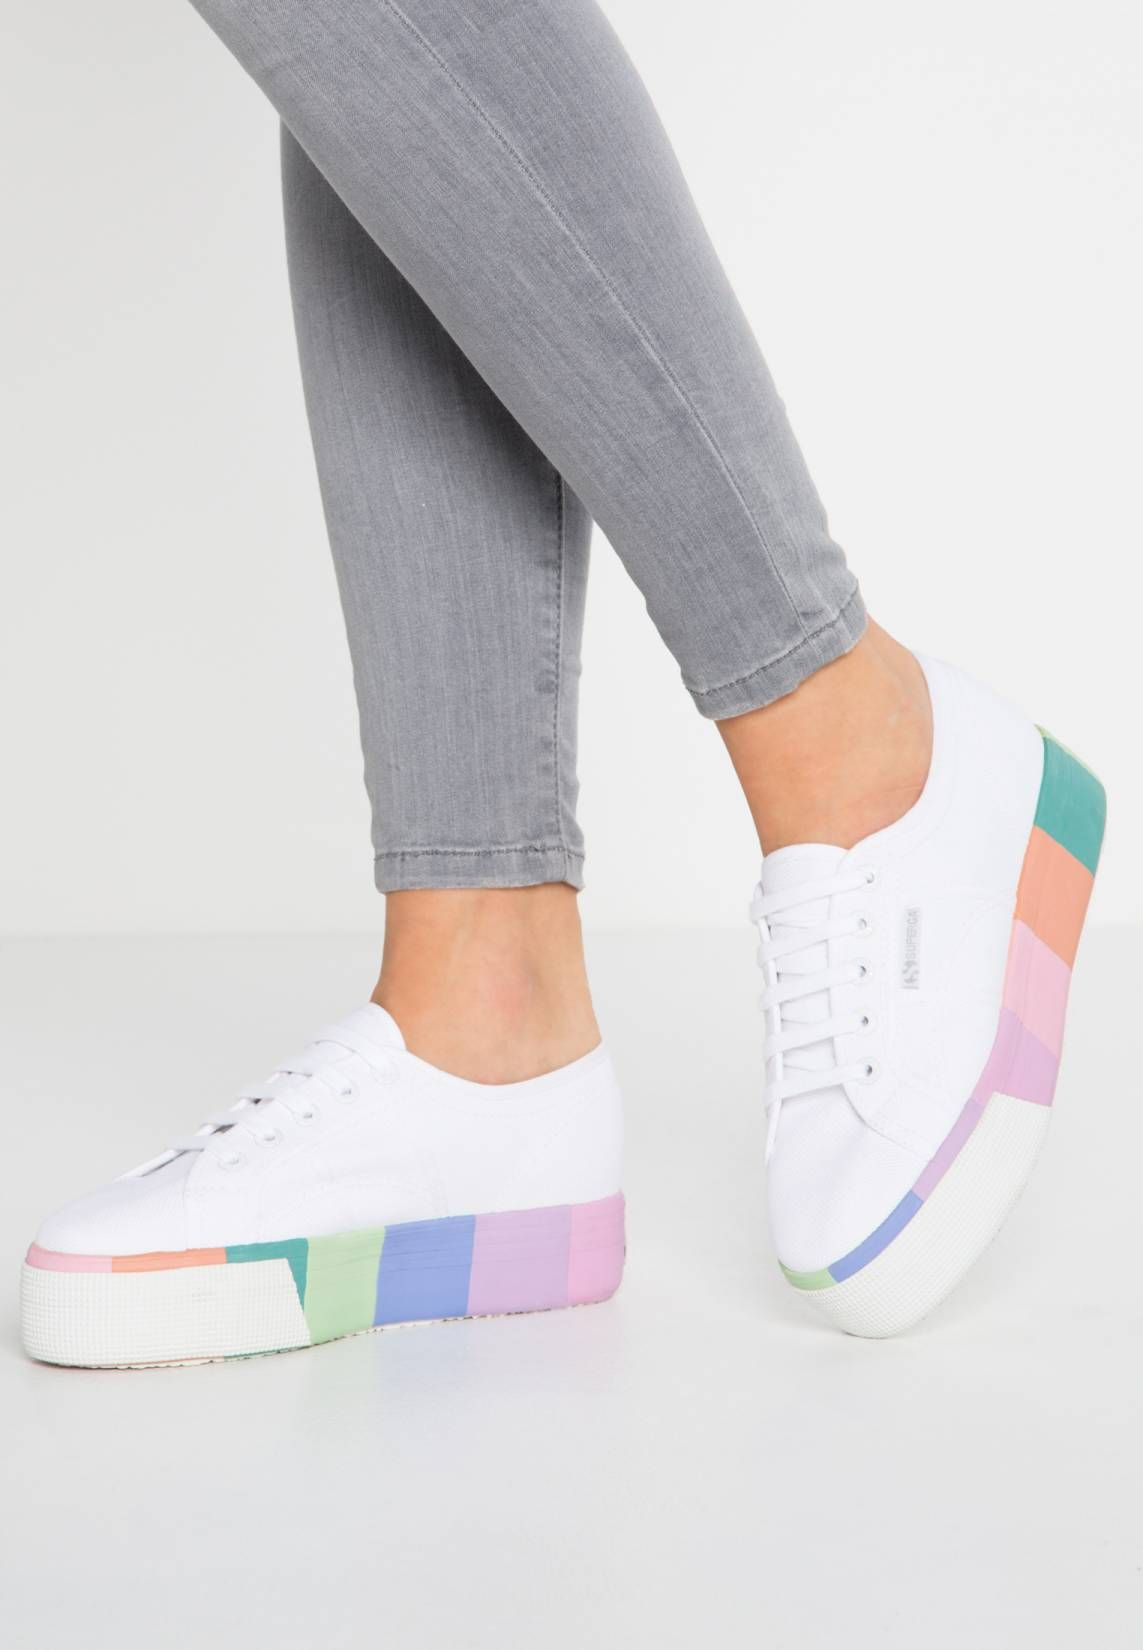 new product 5f56d a92d3 COTMULTIFOXINGW - Sneaker low - white multicolor.  zalandoDE  Sohle Kunststoff